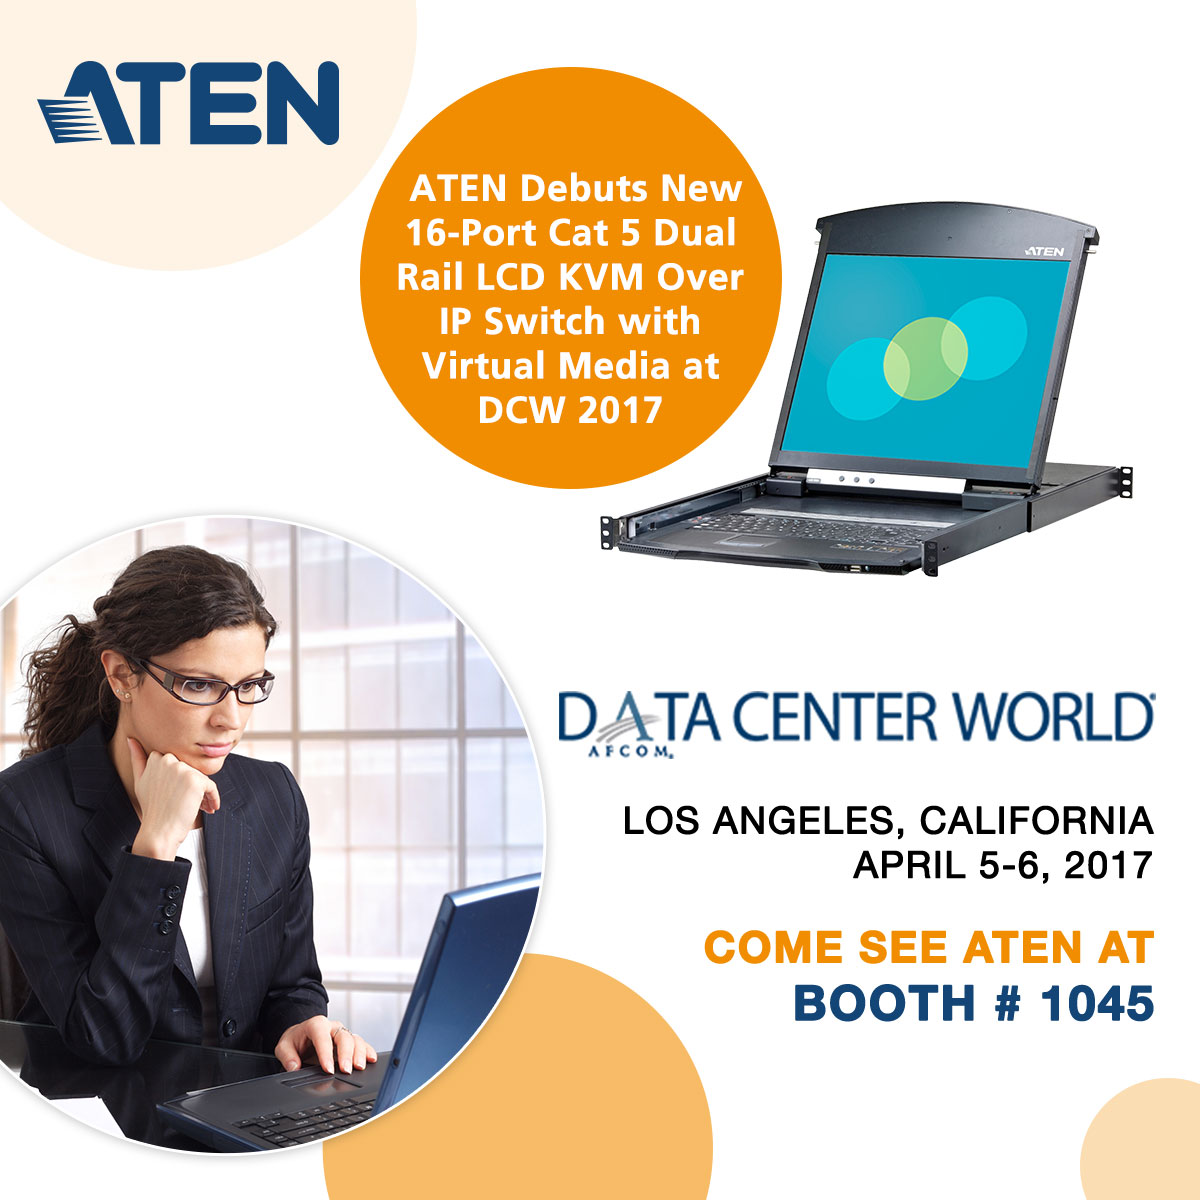 ATEN Debuts New 16-Port Cat 5 Dual Rail LCD KVM Over IP Switch with Virtual Media at Data Center World 2017